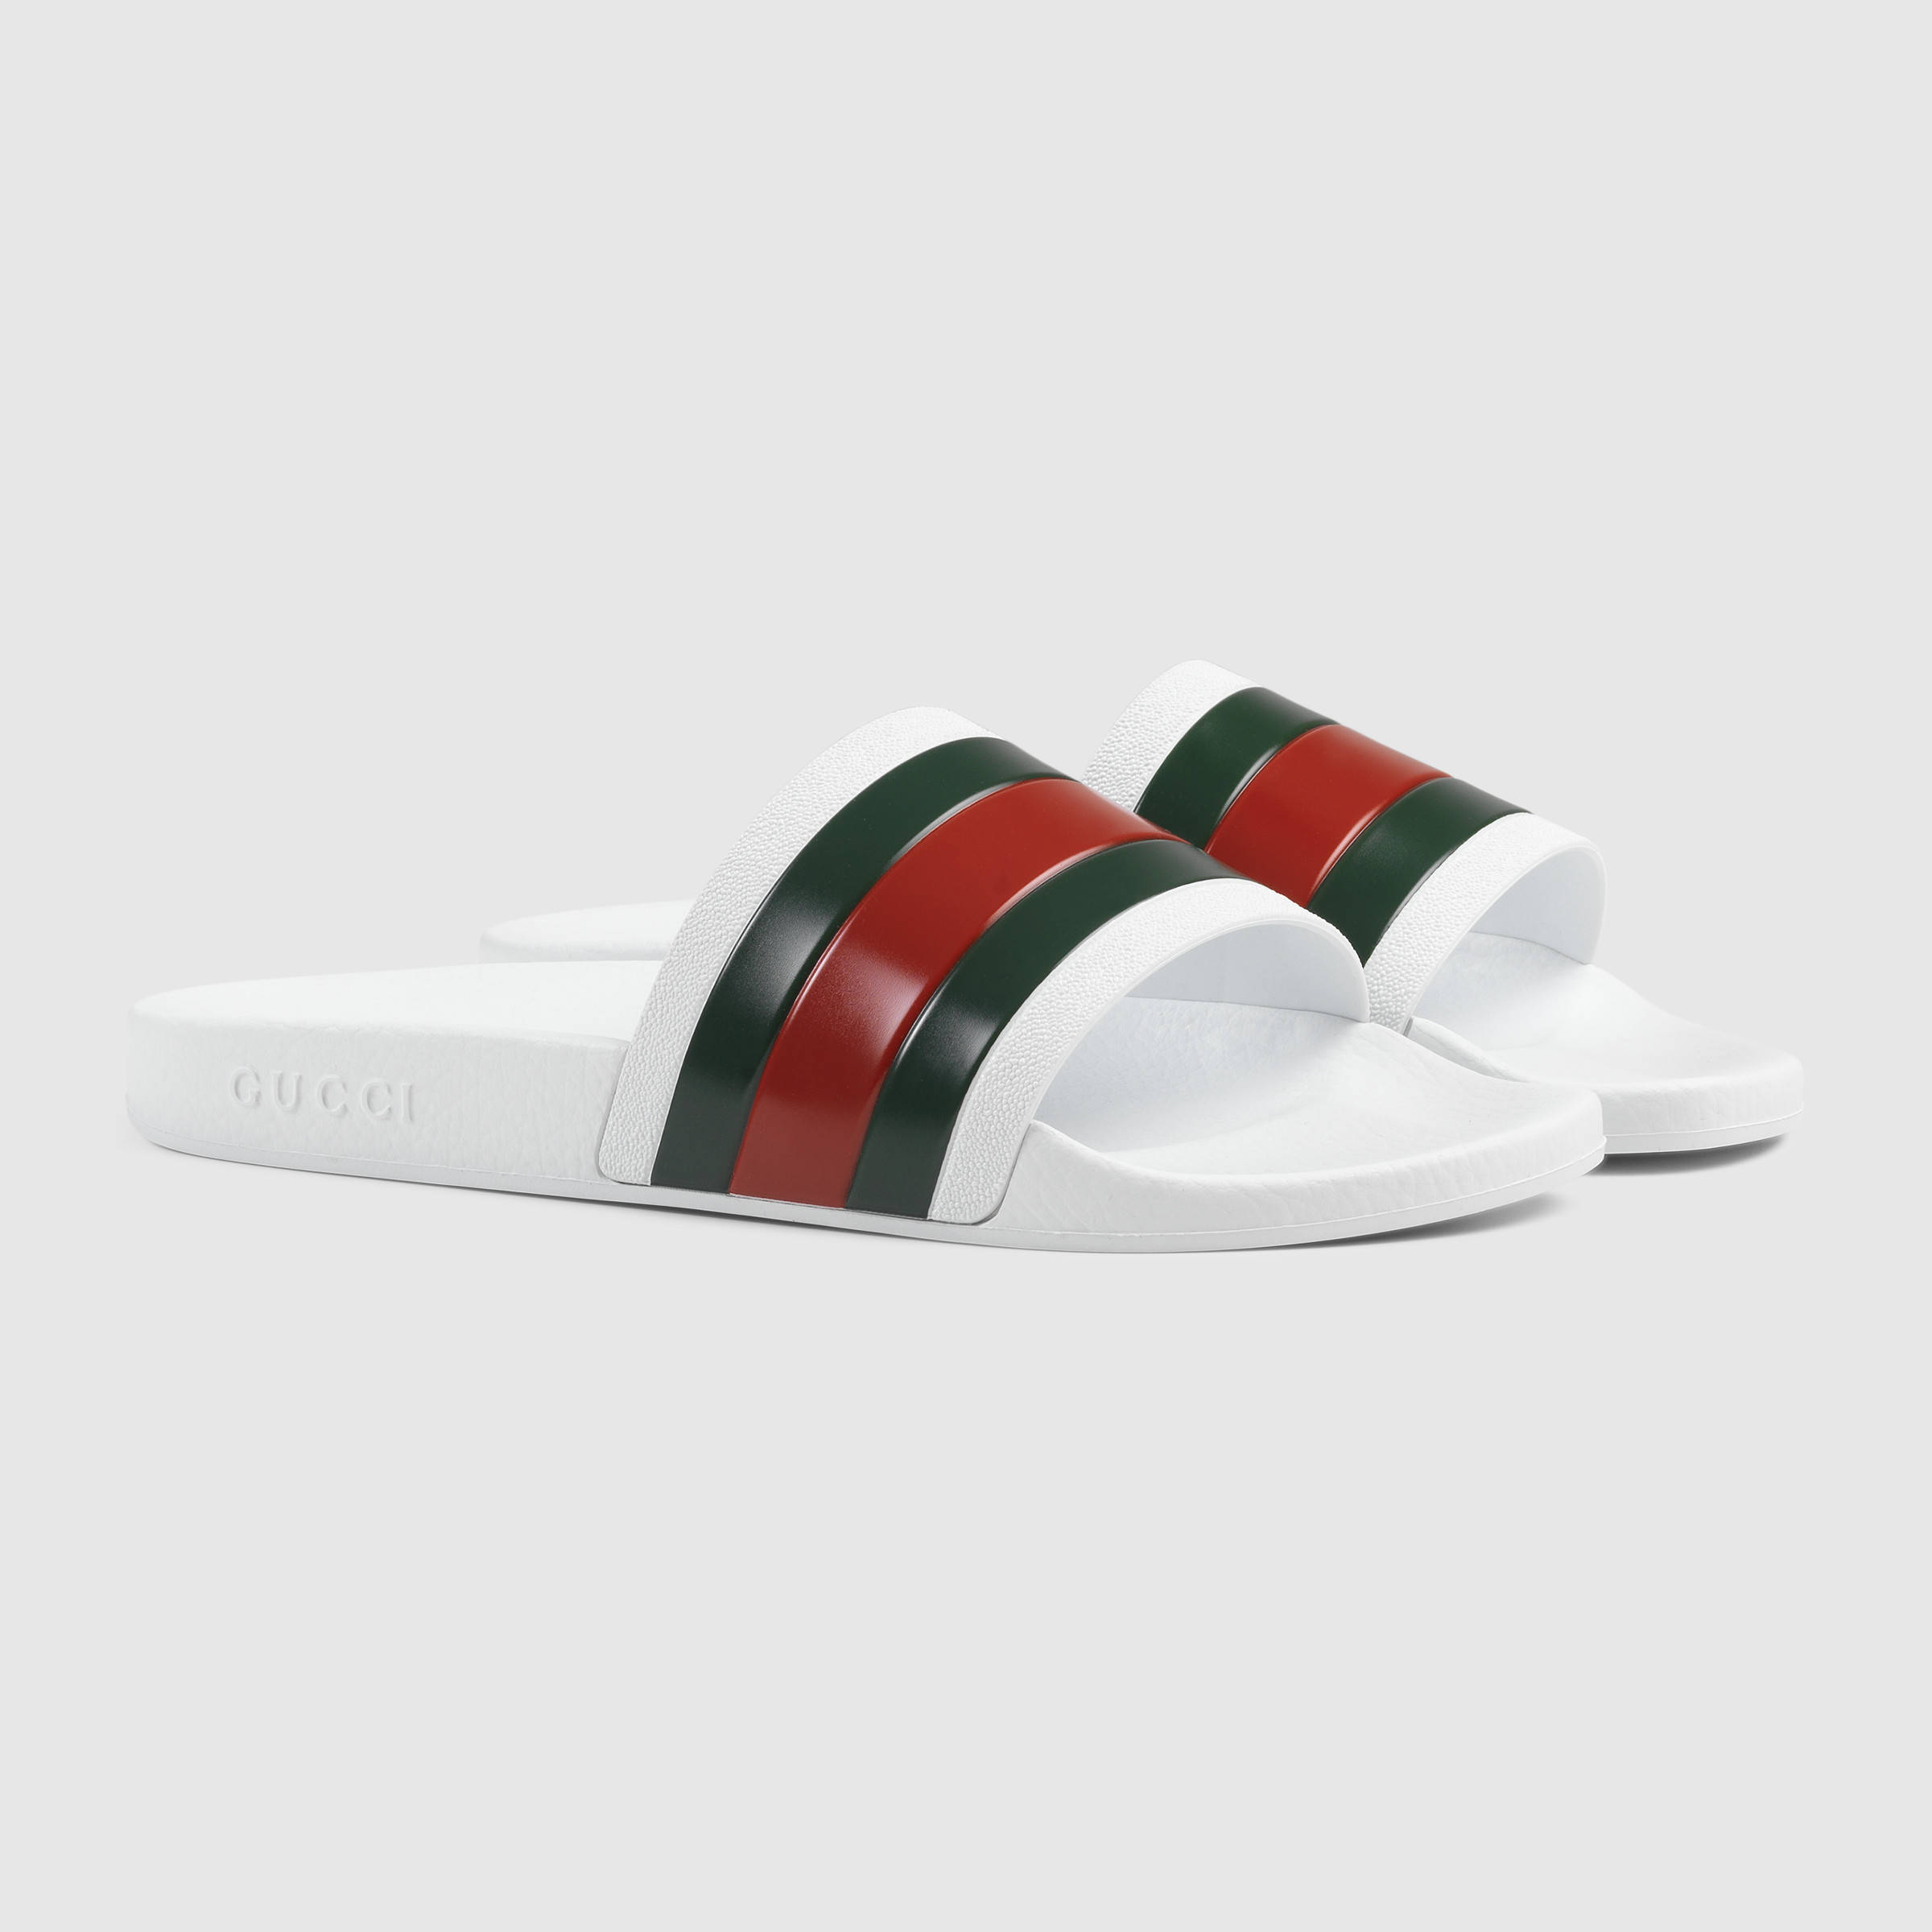 c35256fba Are Gucci Flip Flops Worth It?